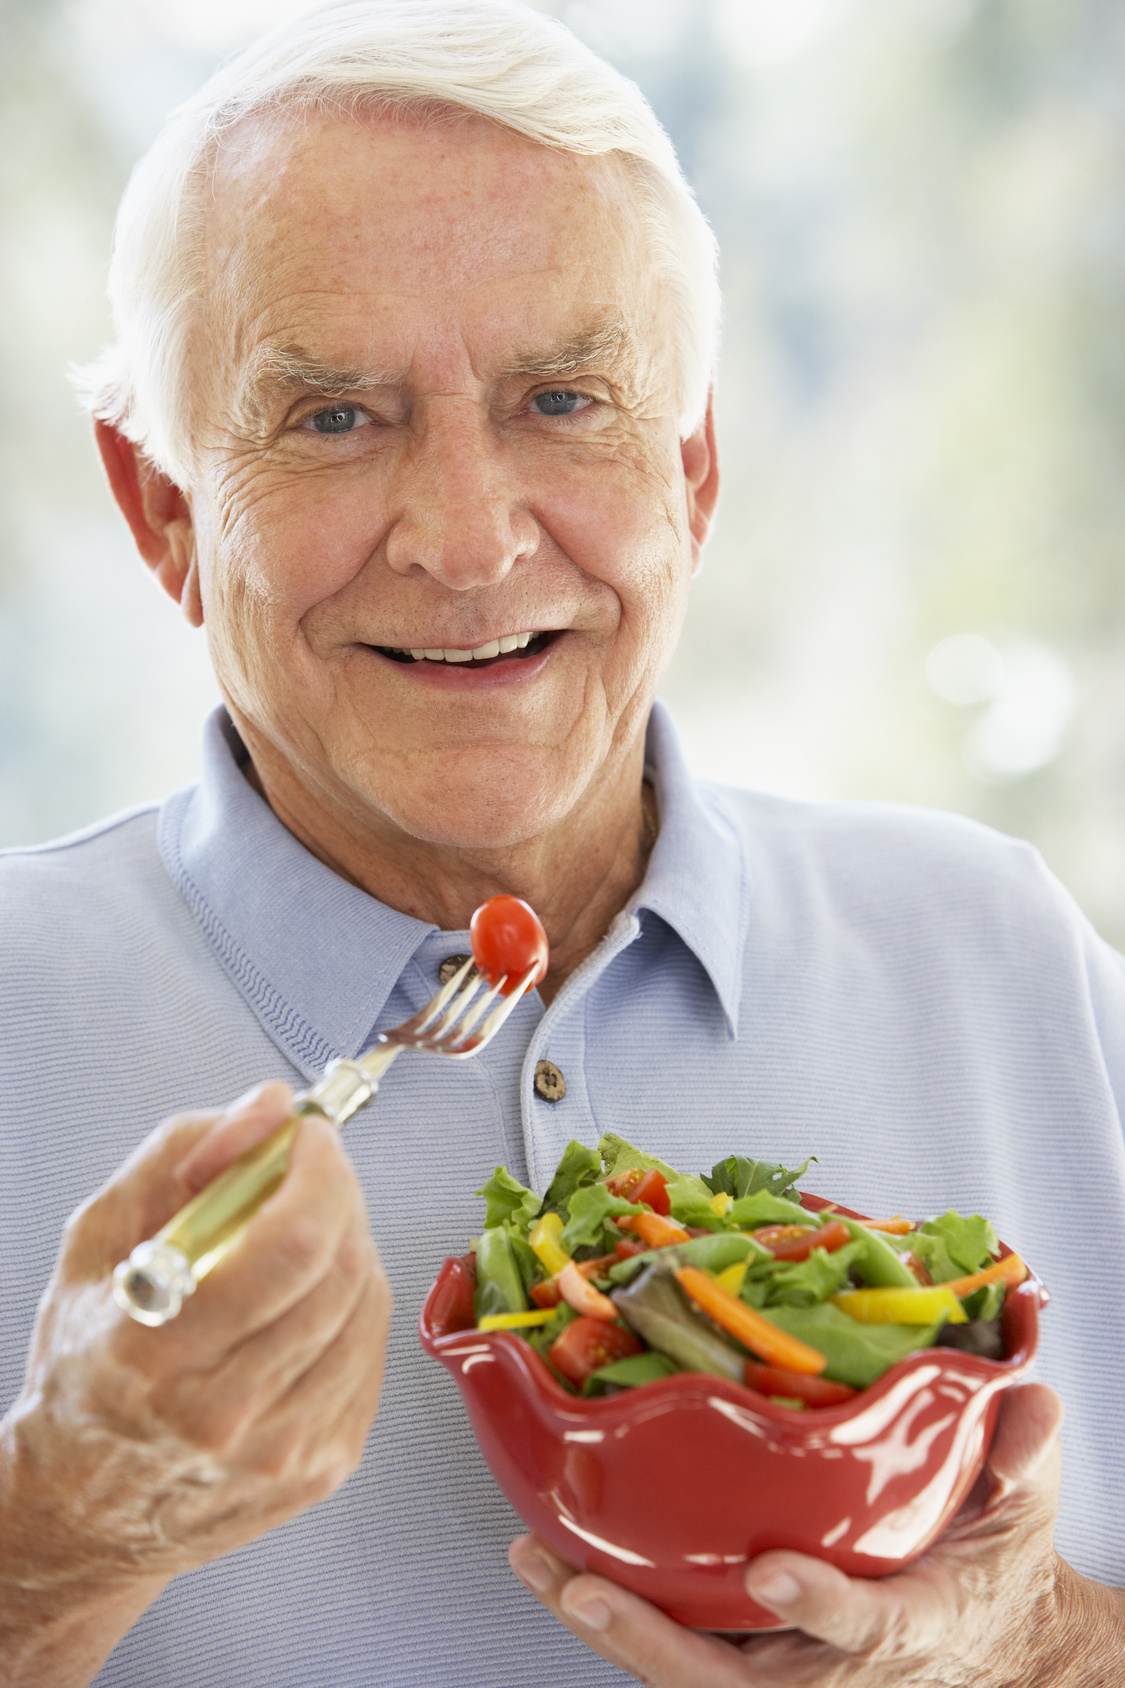 Senior-Eating-Healthy-Salad